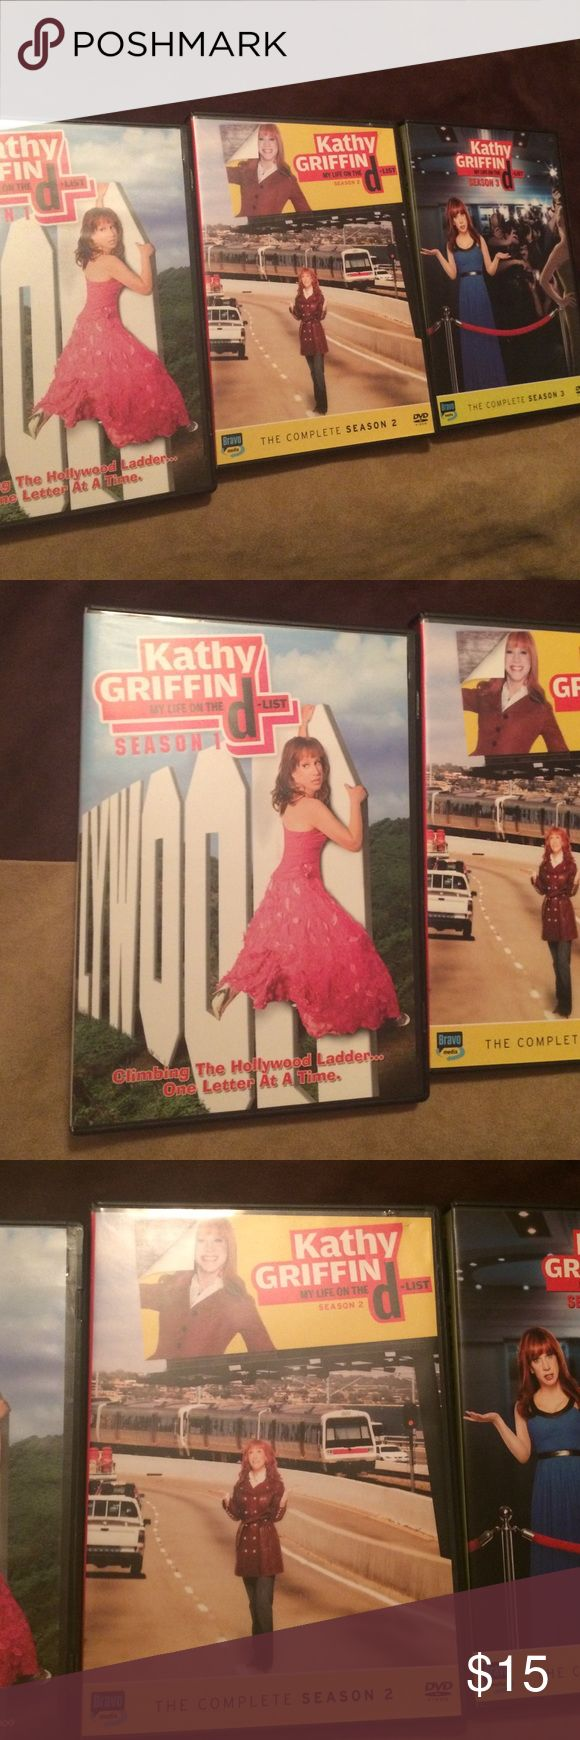 Kathy Griffin DVD sets Season 1 and 2 and 3.dvd sets of Kathy Griffin Accessories